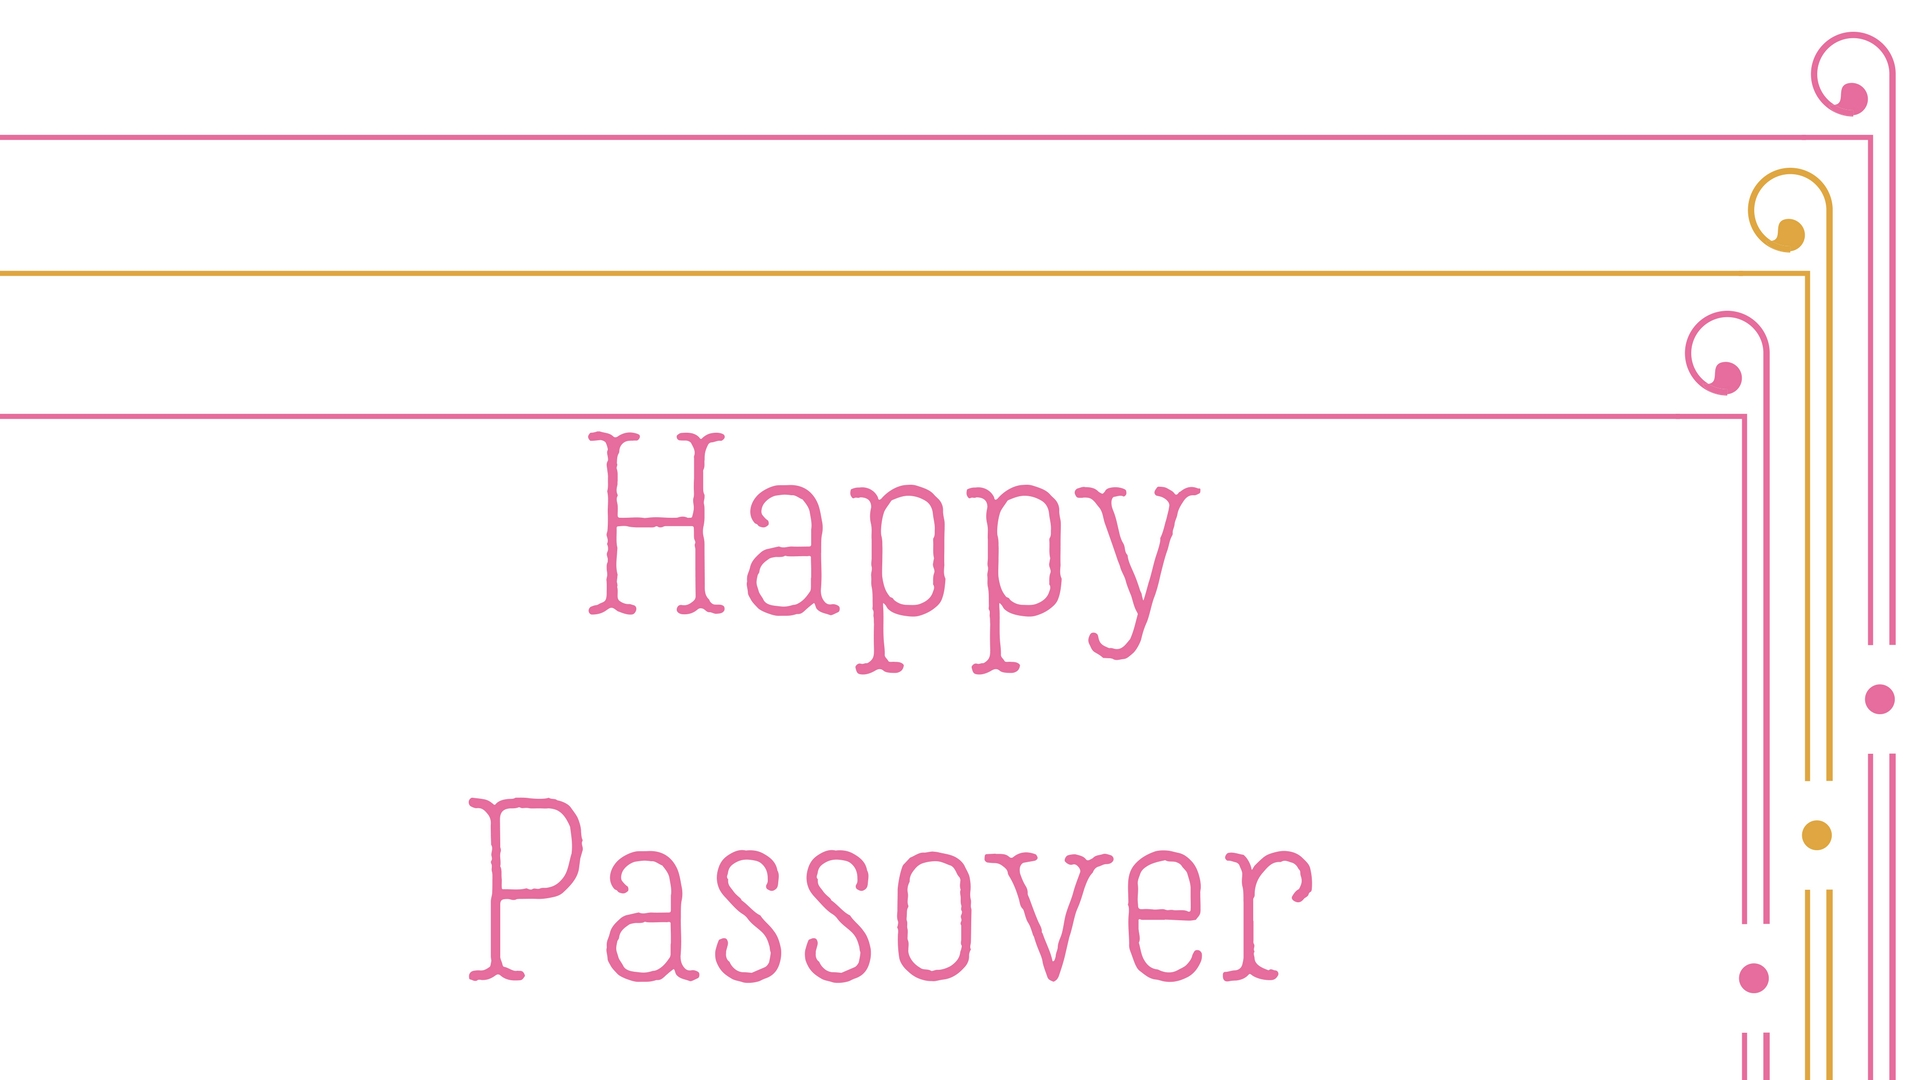 Happy Passover Rectangle Frame Greeting Card Postcard 16